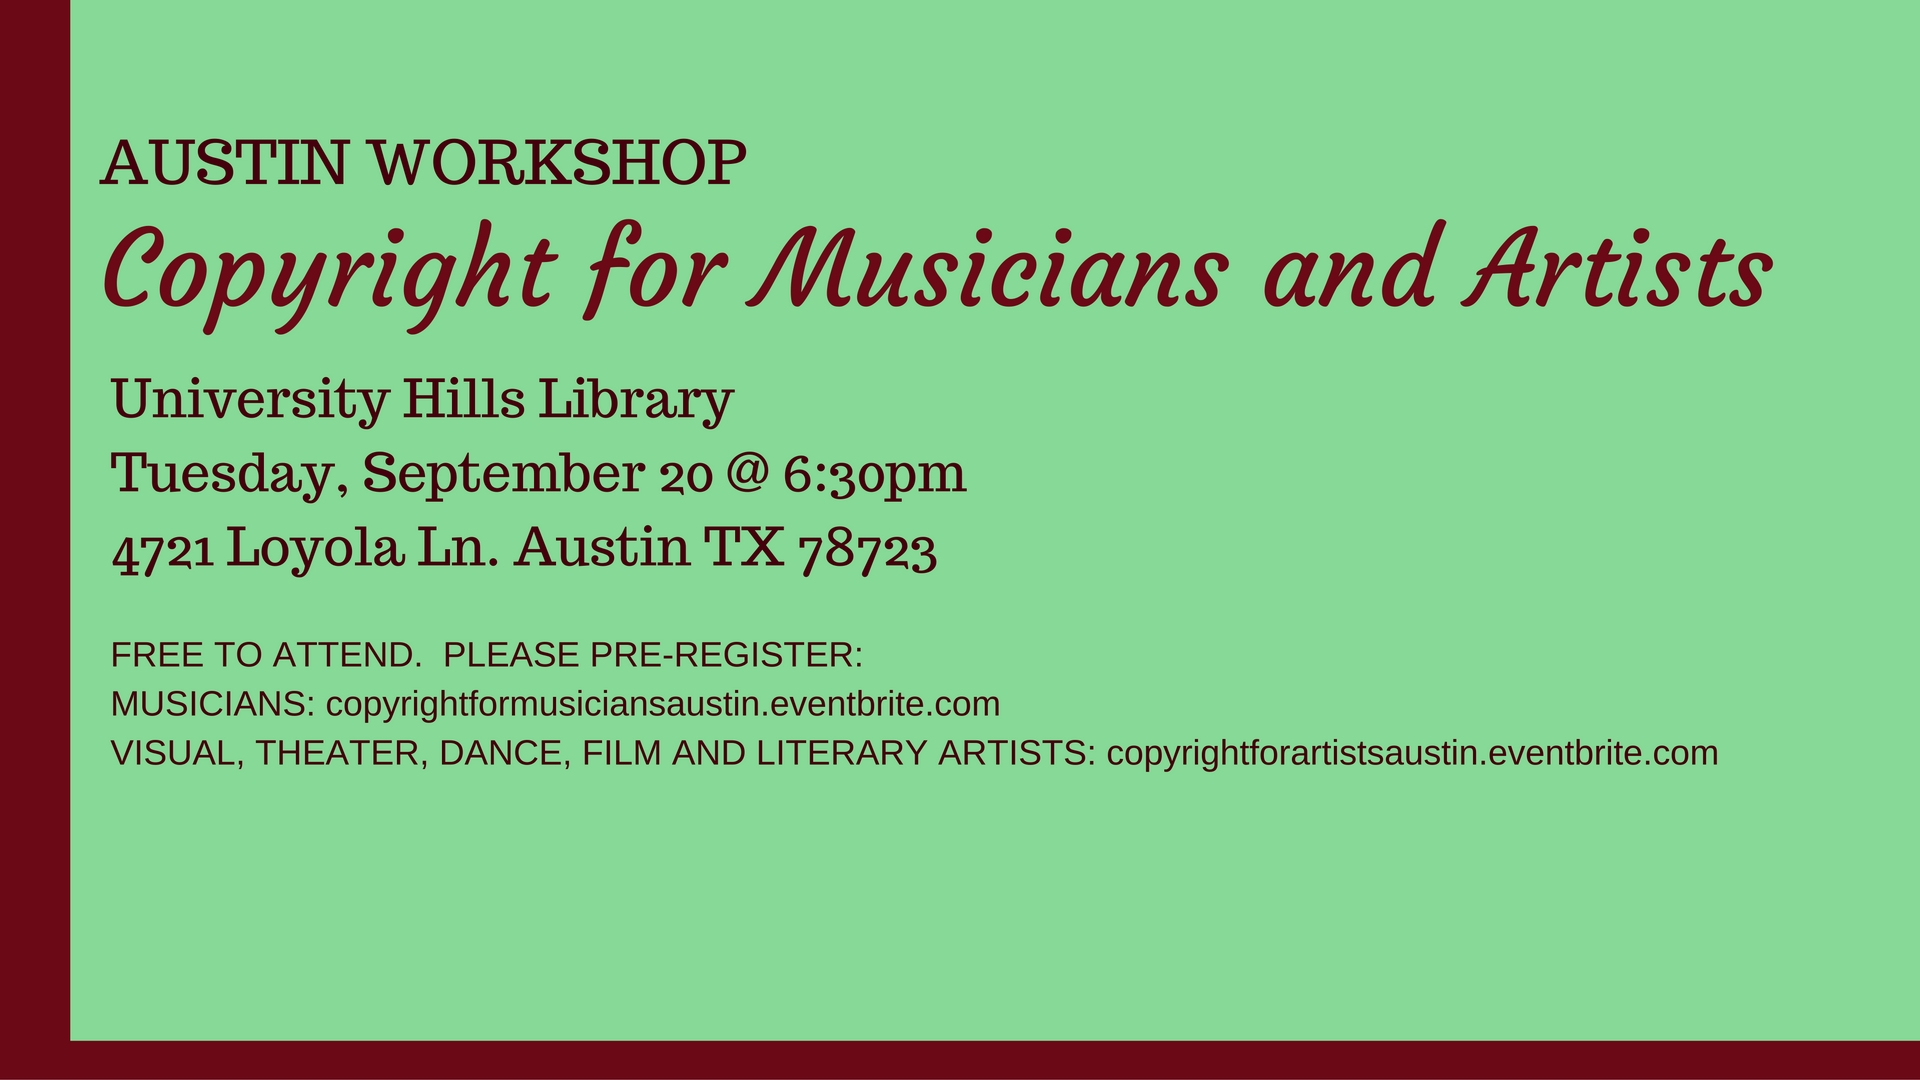 Copyright for Artists and Musicians (1)